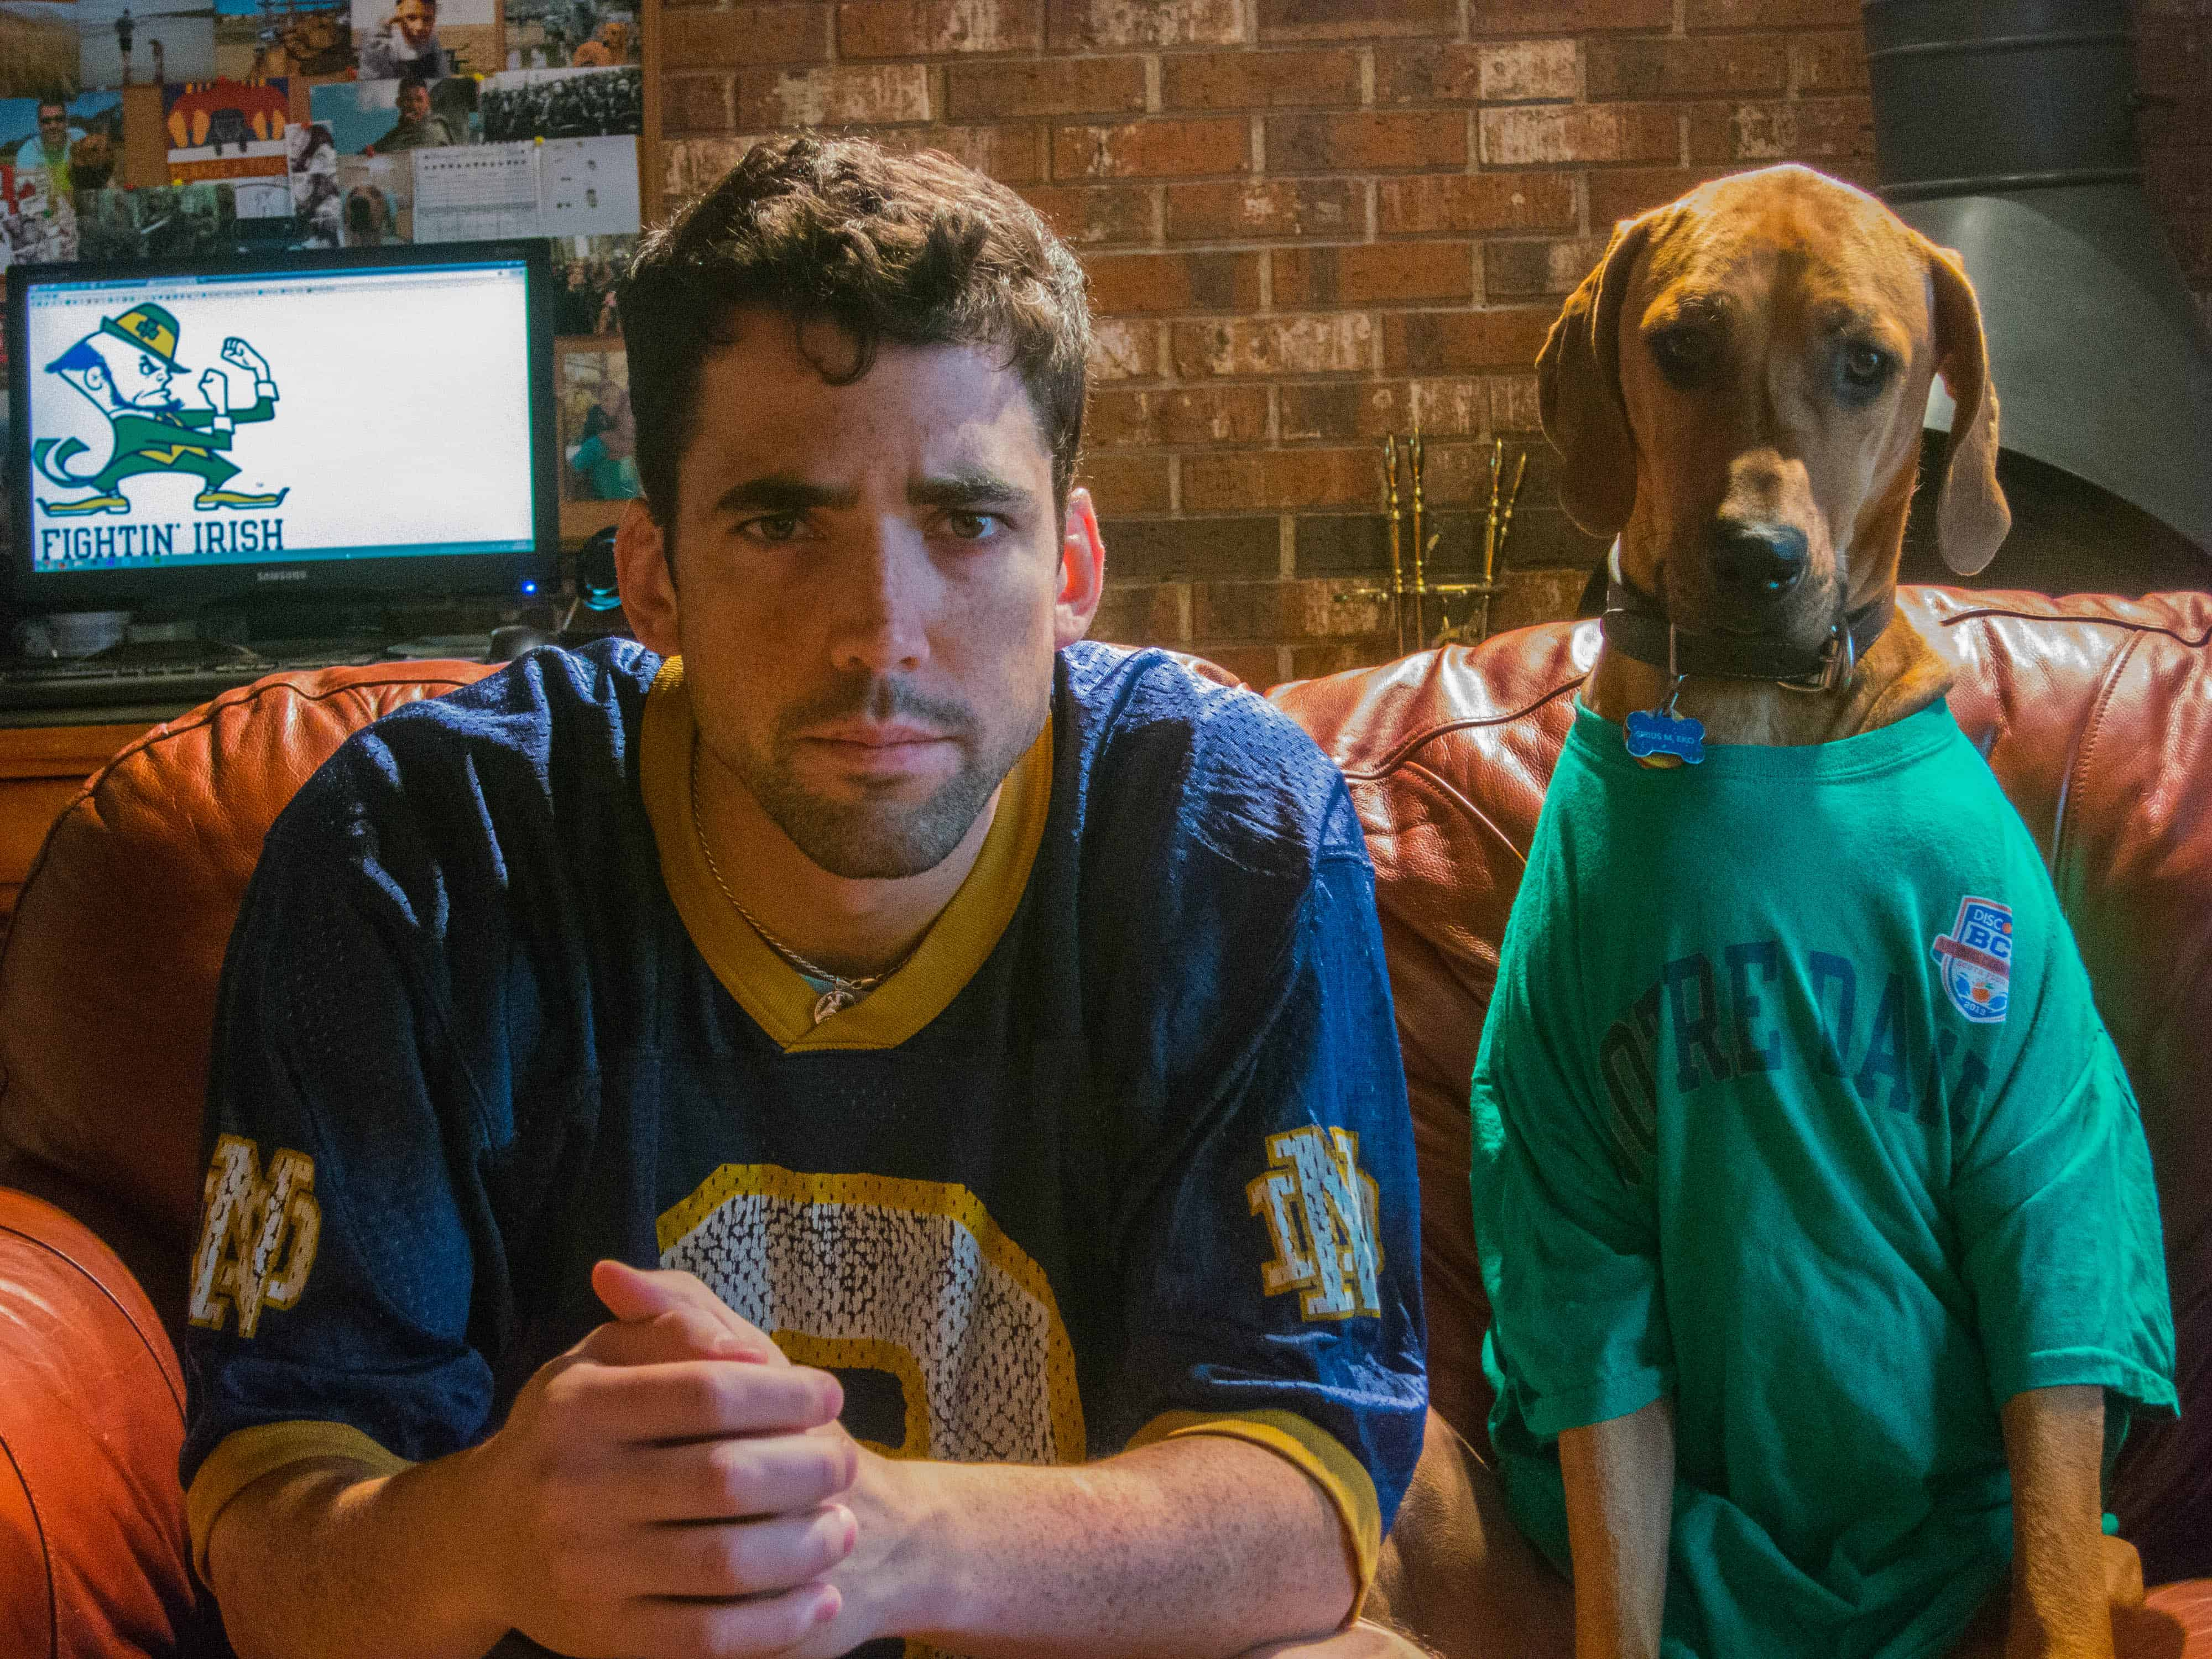 Notre Dame Football, Rhodesian Ridgeback, dog adventure, funny, marking our territory, petcentric